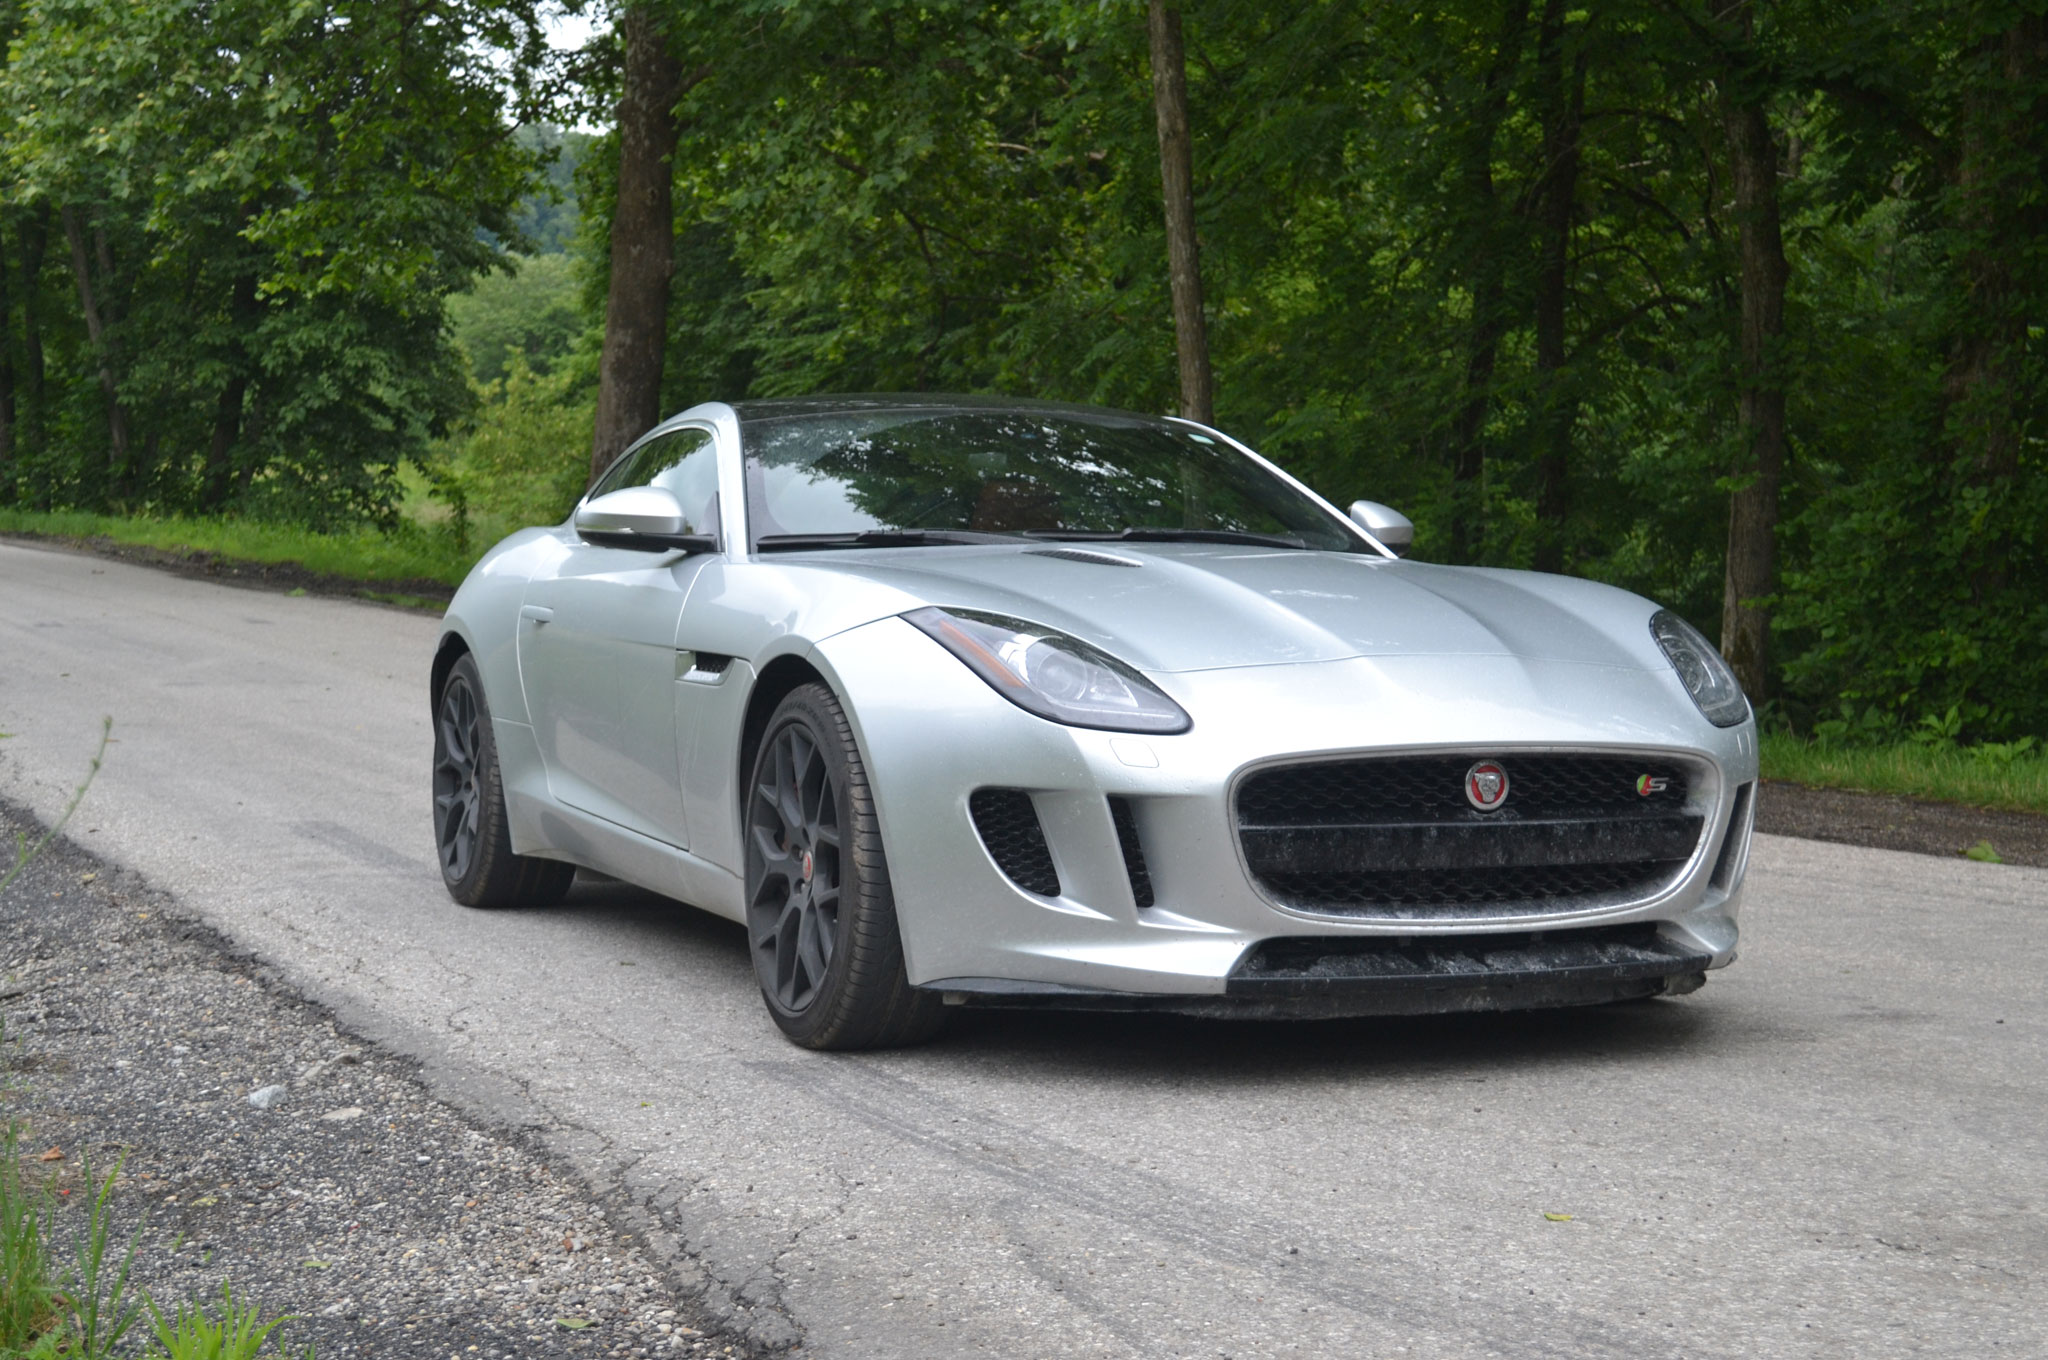 Civic Type R Awd >> 2015 Jaguar F-Type S Coupe - Showing its Miles